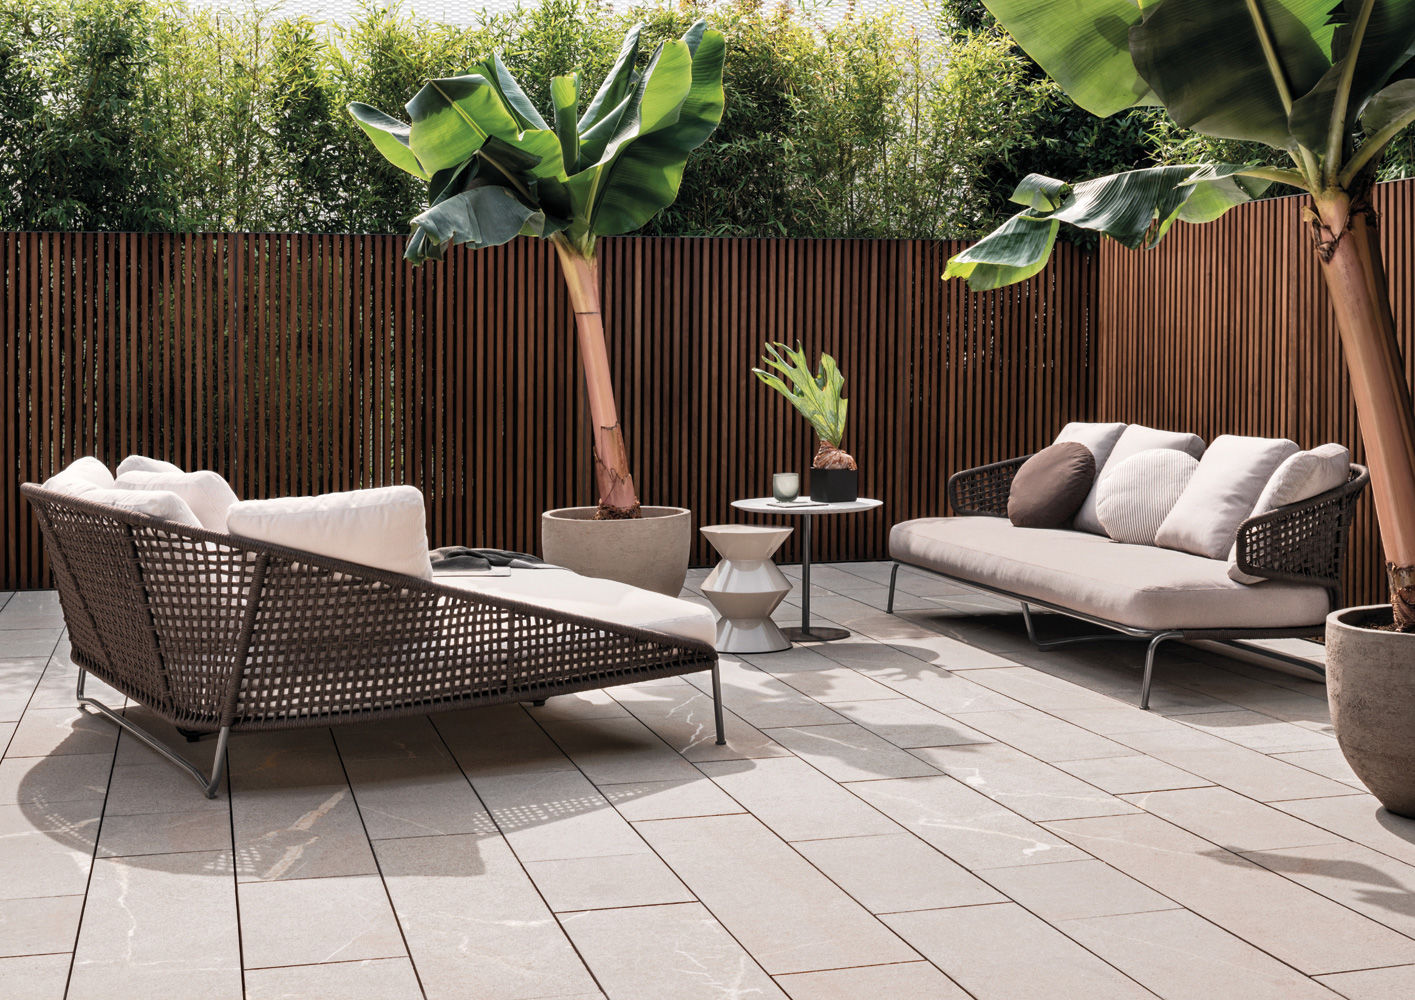 minotti outdoor furniture. 04 Minotti Outdoor Furniture